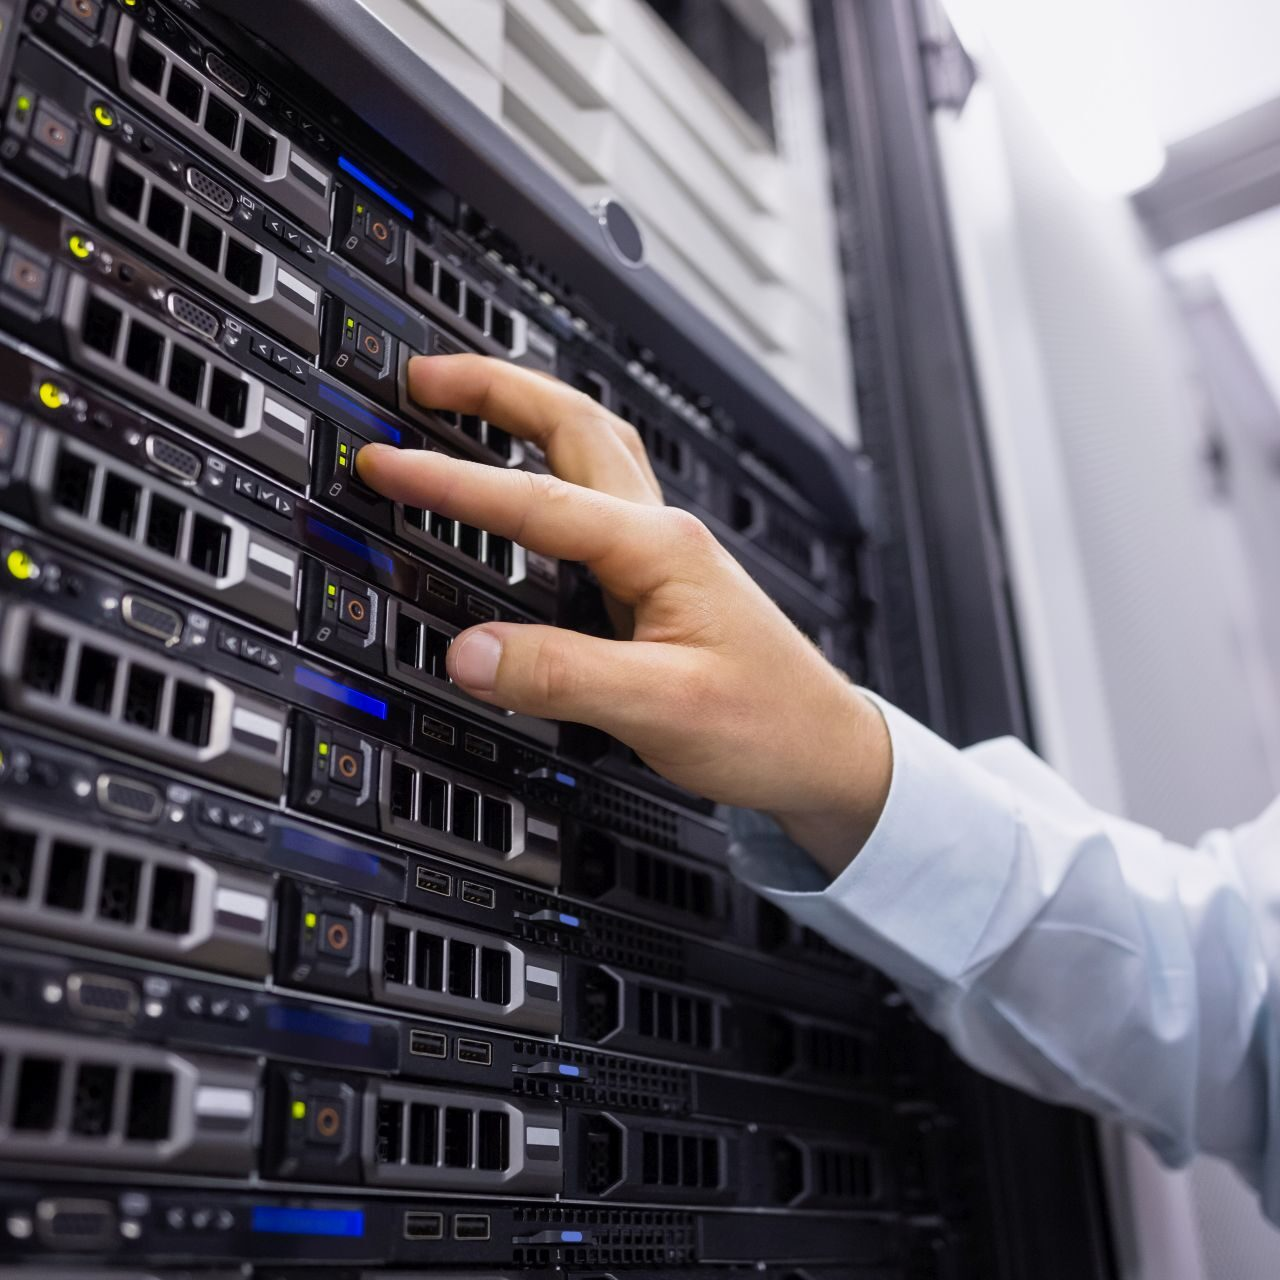 Technician working on server tower in large data center